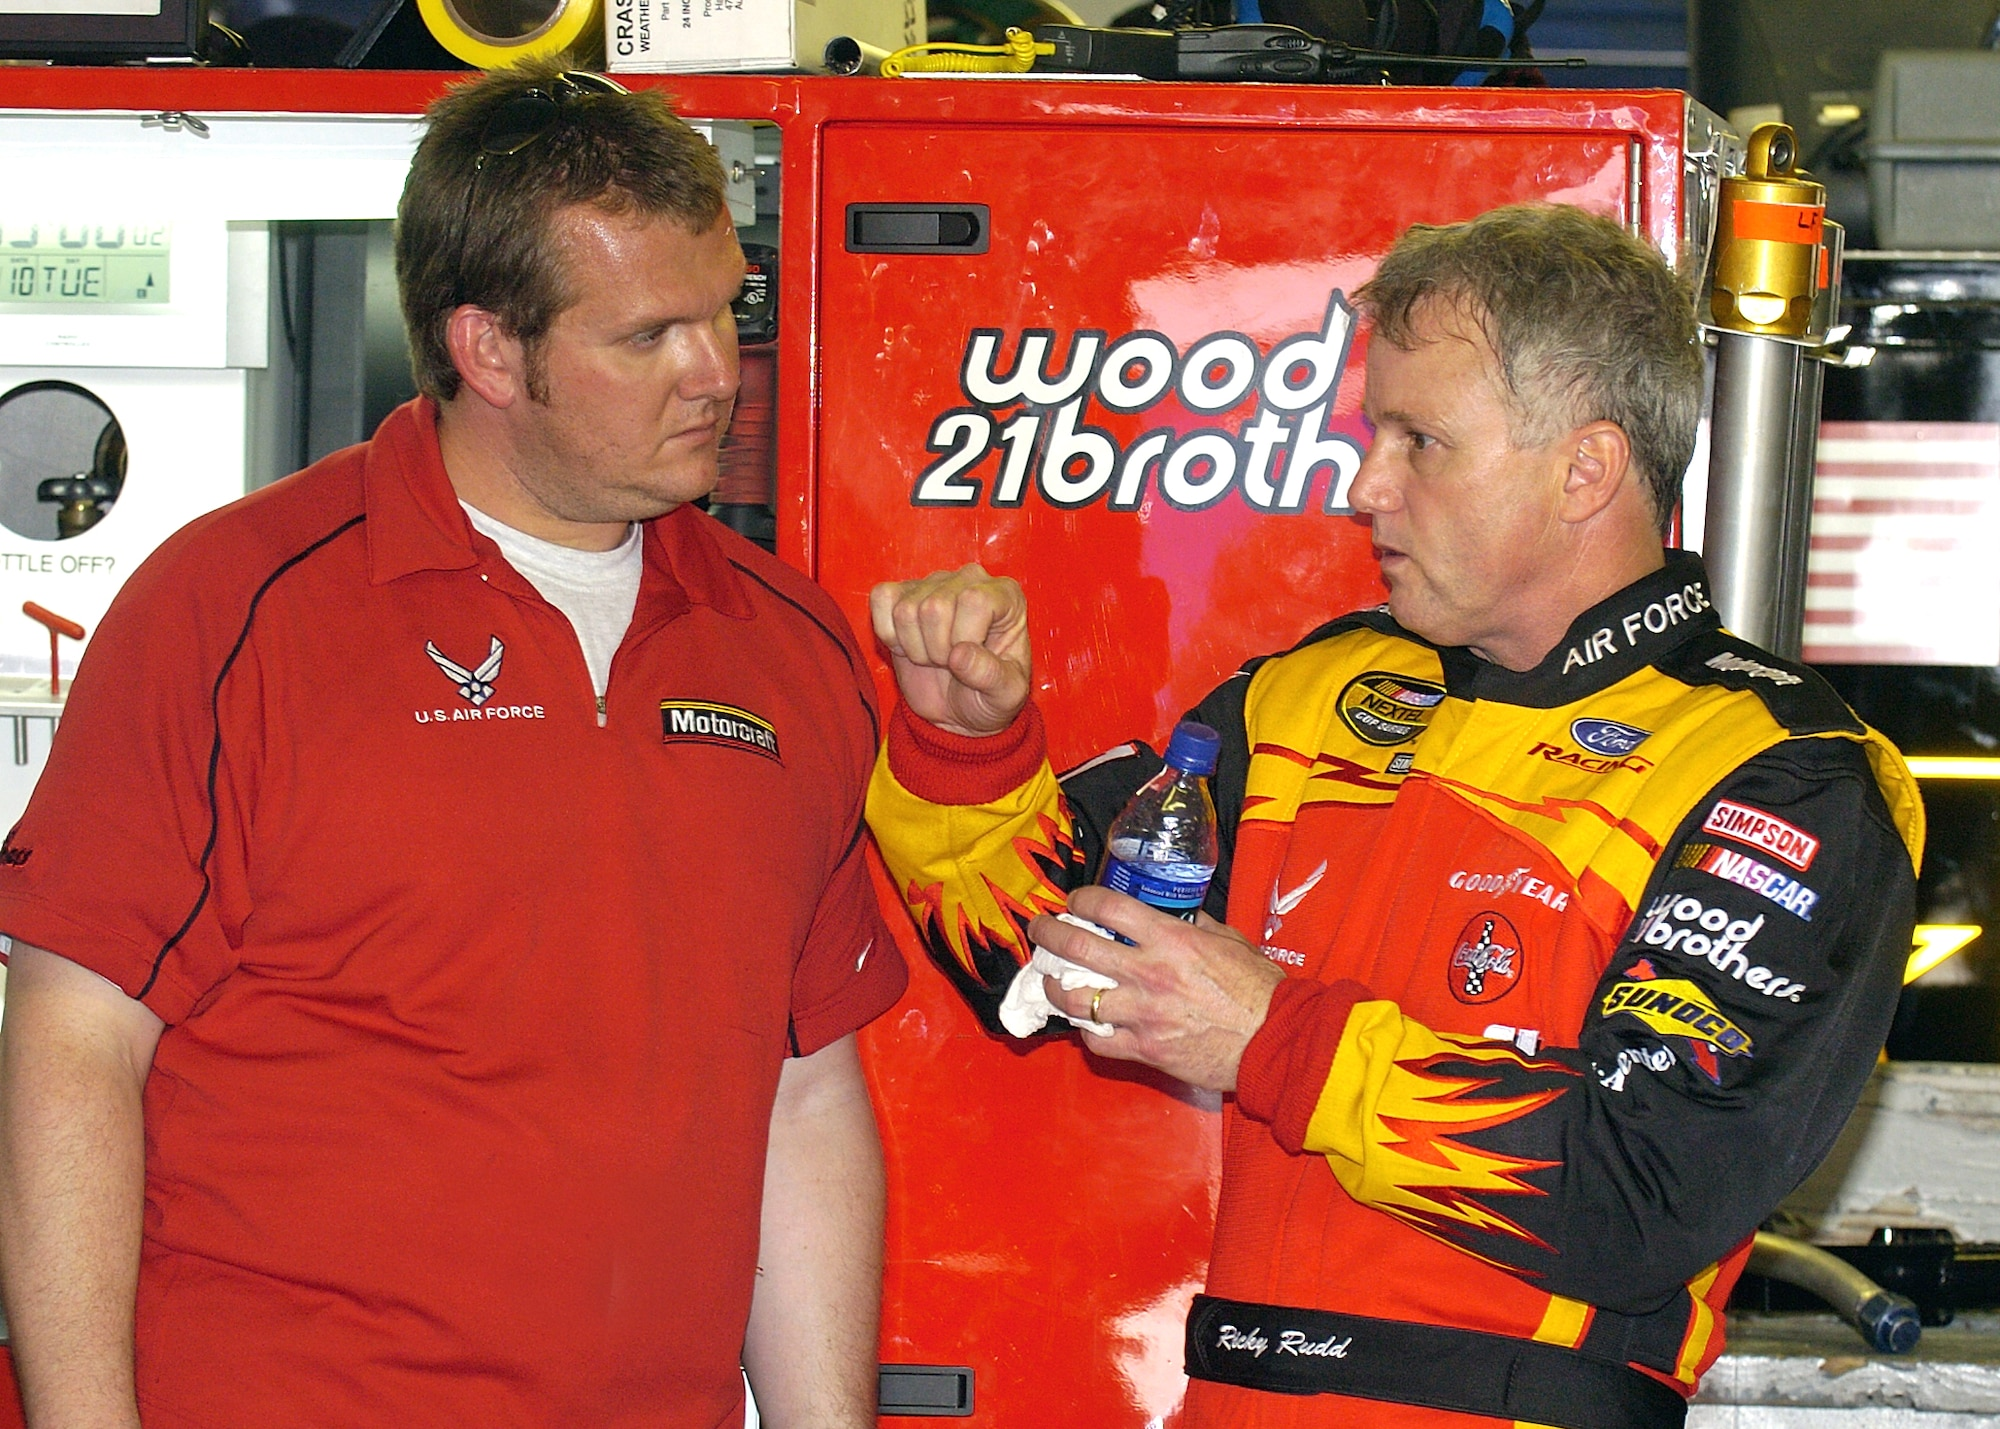 DAYTONA INTERNATIONAL SPEEDWAY, Fla. -- Ricky Rudd, driver of the Air Force-sponsored Wood Brothers Racing No. 21 Ford Taurus goes over some car-handling details with his crew chief, Ben Leslie, following a practice session at the speedway Feb. 11.  They are preparing for the Daytona 500 race, which will be held here Feb. 15.  (U.S. Air Force photo by Larry McTighe)